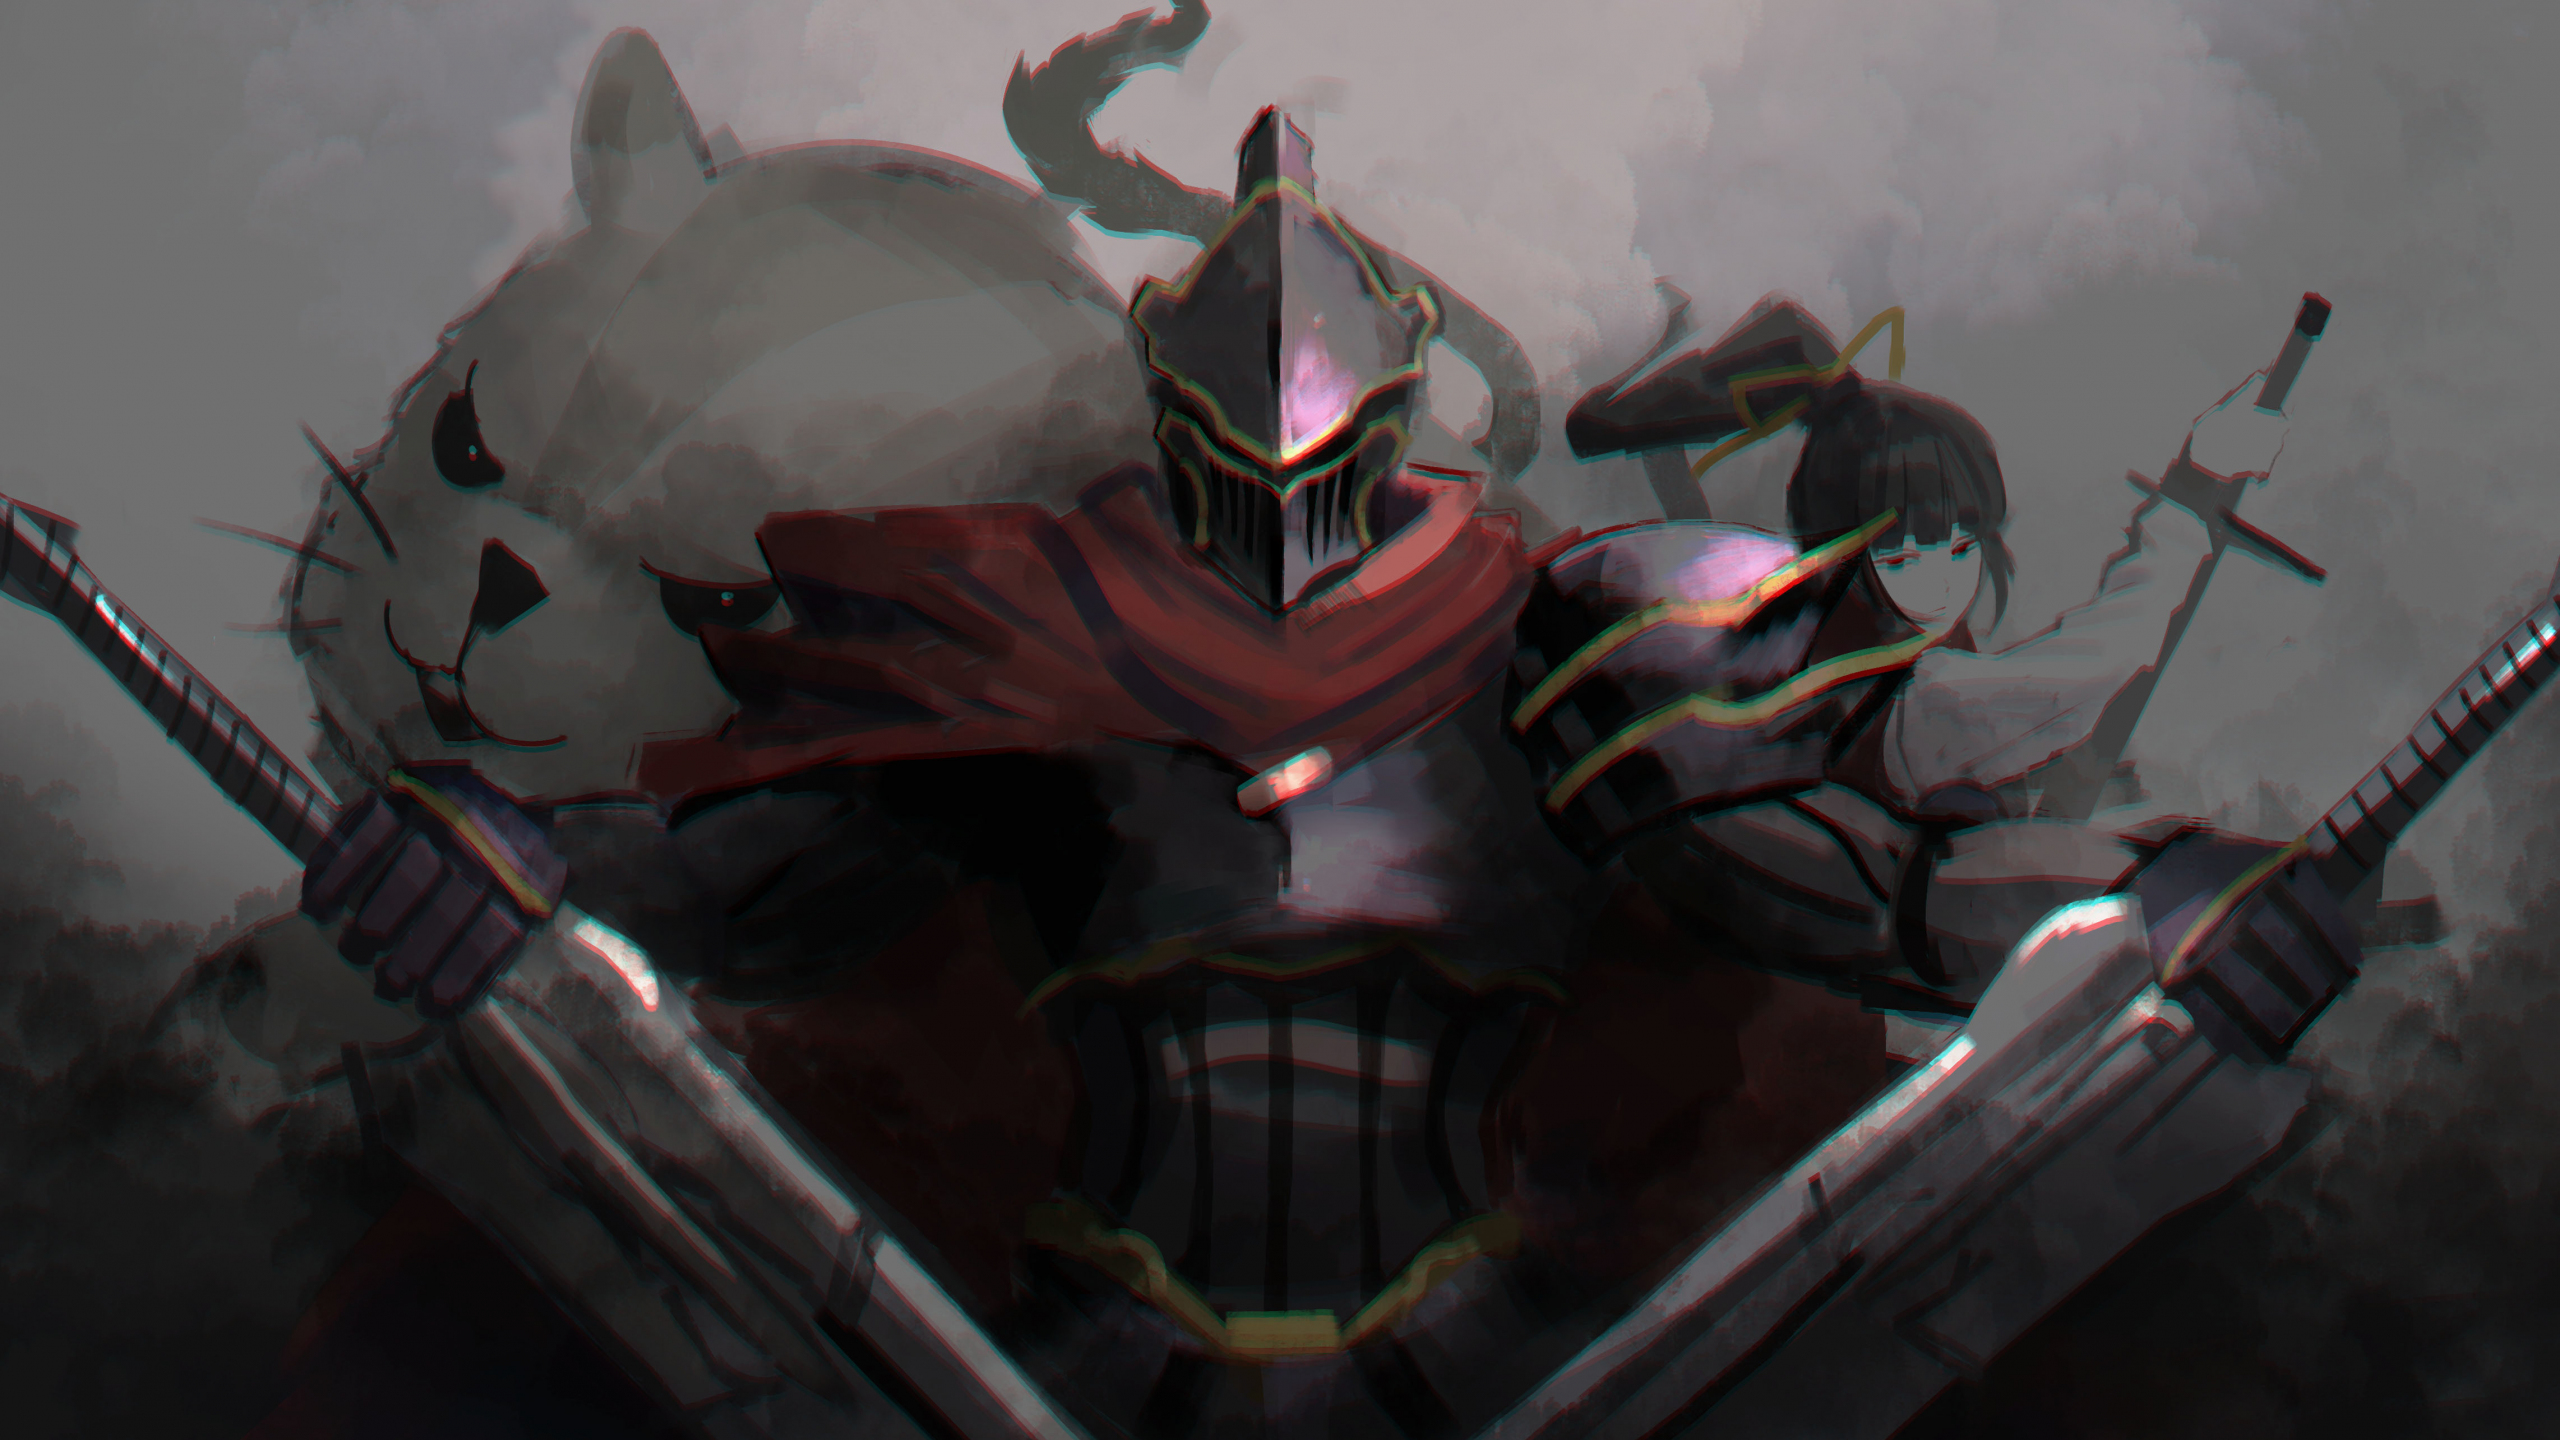 Downaload Overlord King And Warriors Art Wallpaper: Download 2560x1440 Wallpaper Overlord, Anime, Armour Suit